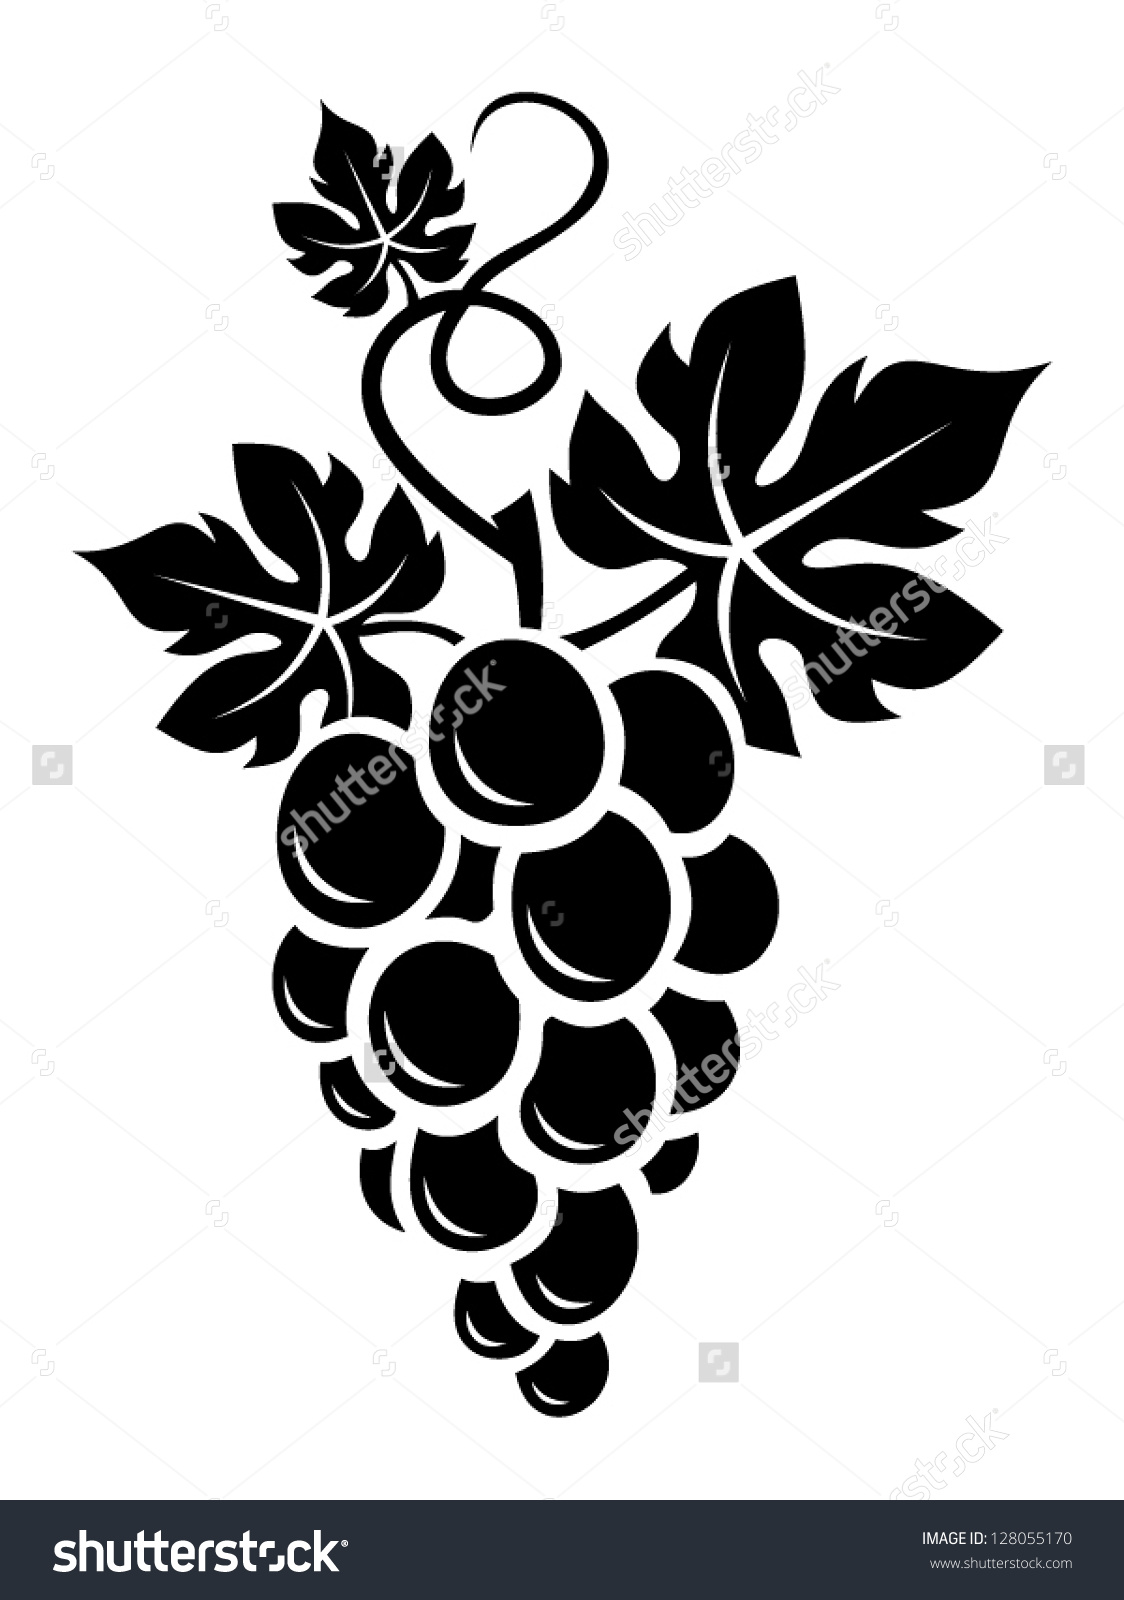 Black Silhouette Grapes Vector Illustration Stock Vector 128055170.